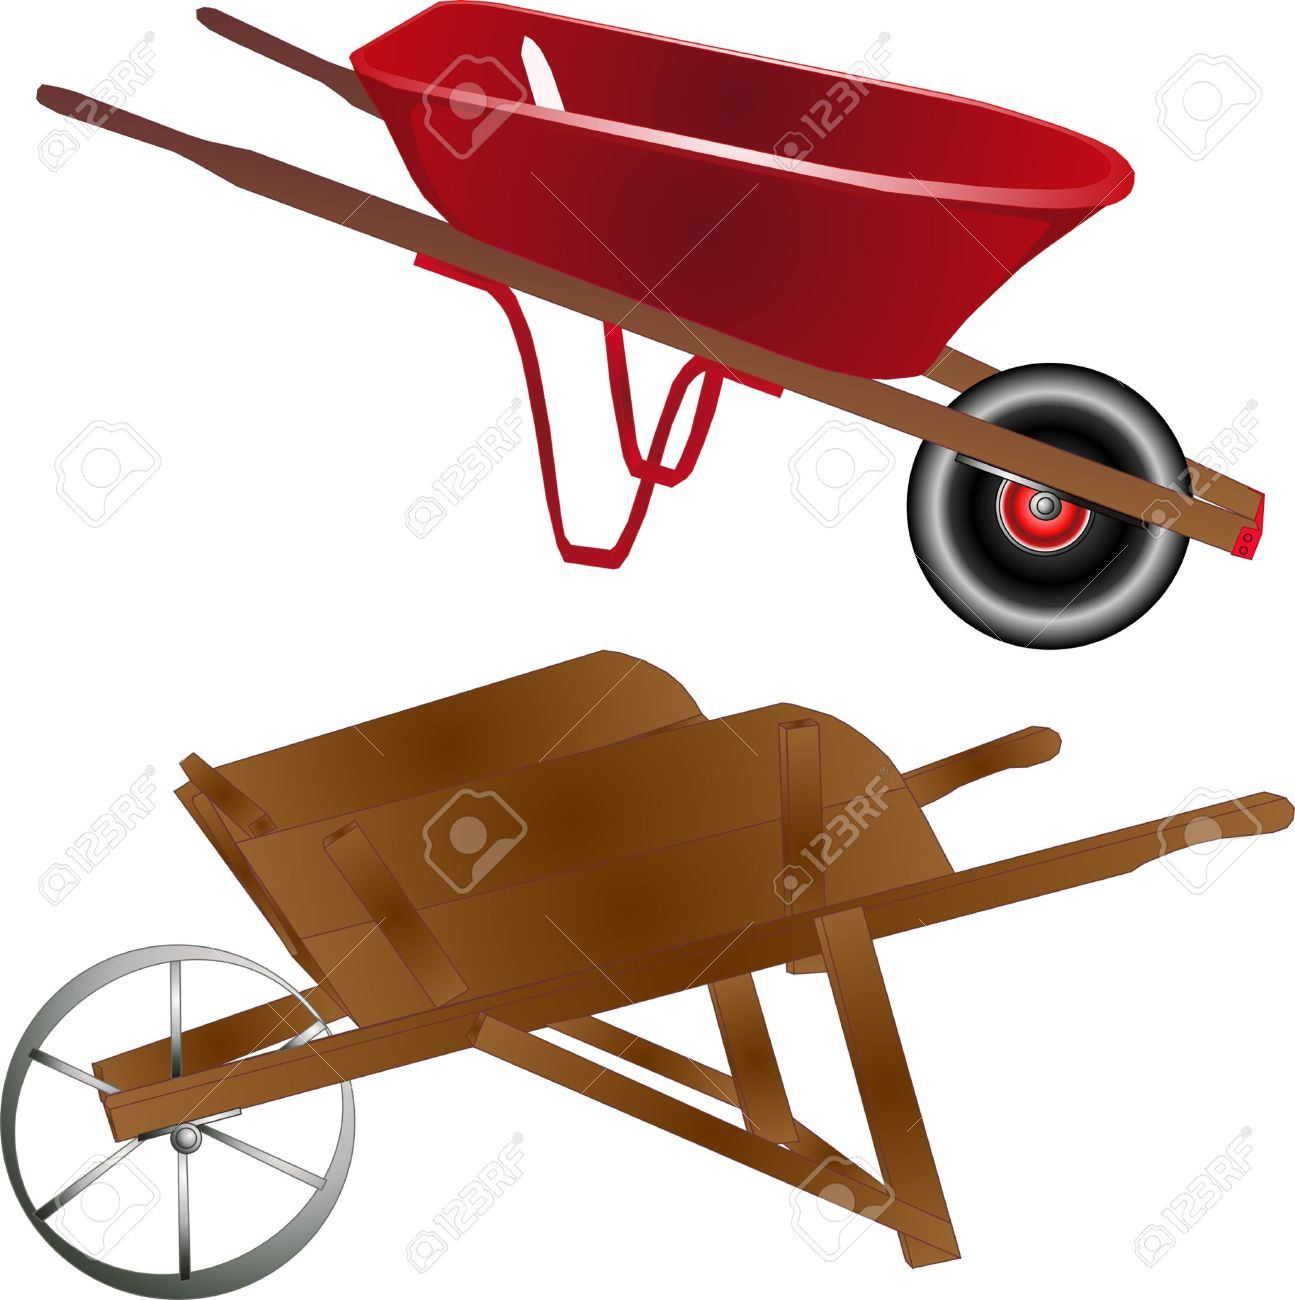 New vs old clipart graphic black and white library Old And New Wheelbarrows, Wooden And Metal Royalty Free Cliparts ... graphic black and white library